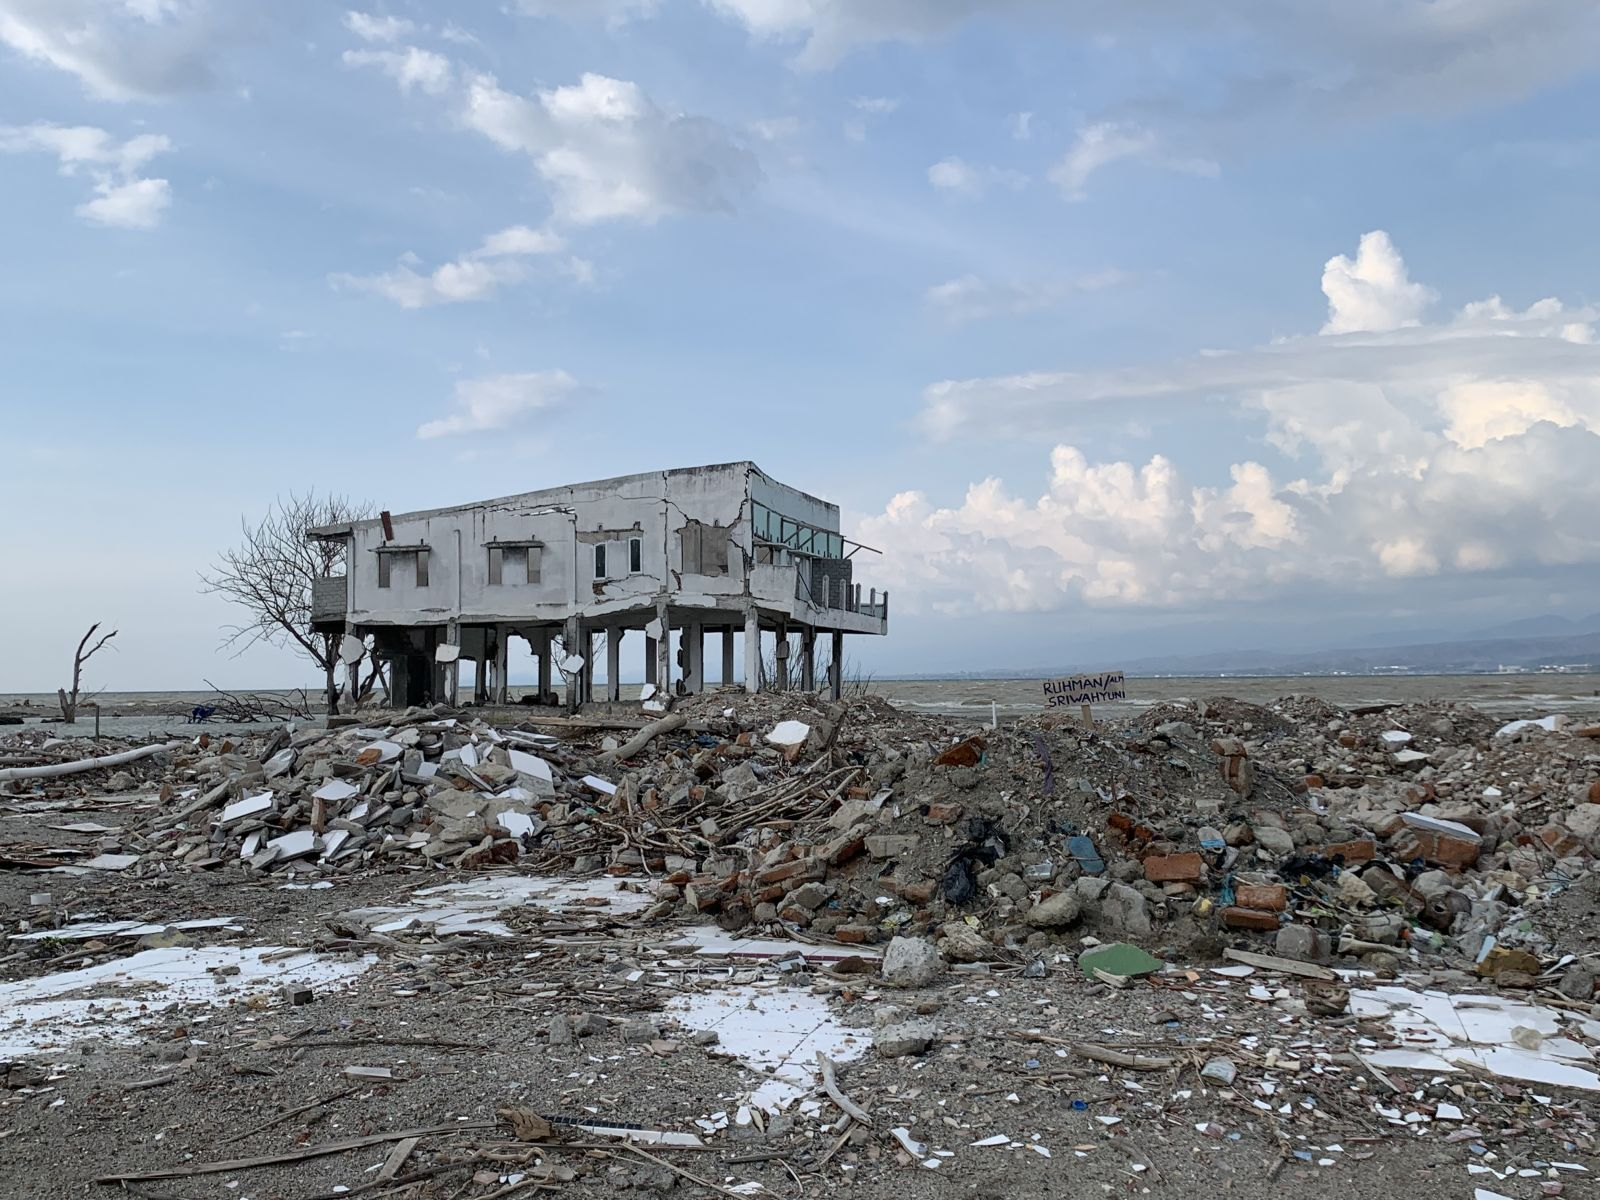 Compound disasters caused by strong earthquakes (tsunamis, soil liquefaction, etc.)